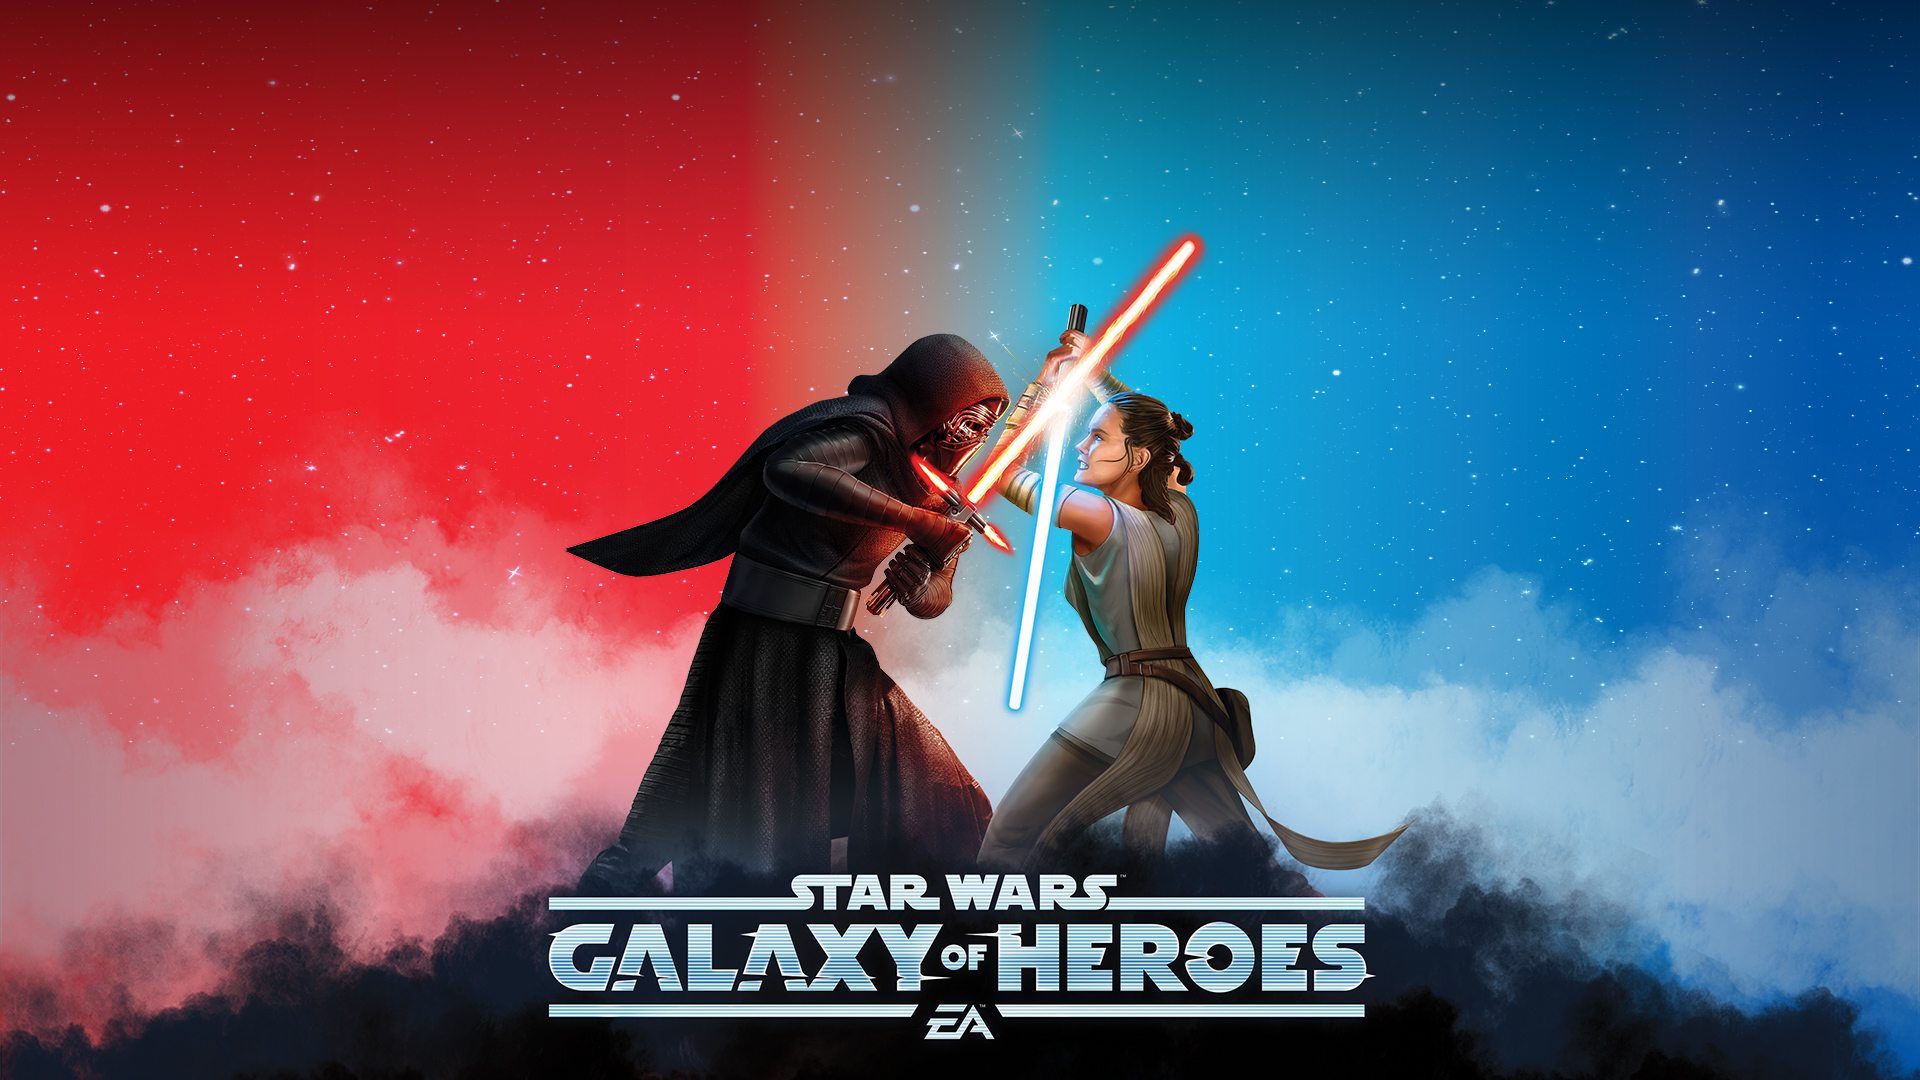 Cute Wallpapers Chibi Animals Star Wars Galaxy Of Heroes Hd Games 4k Wallpapers